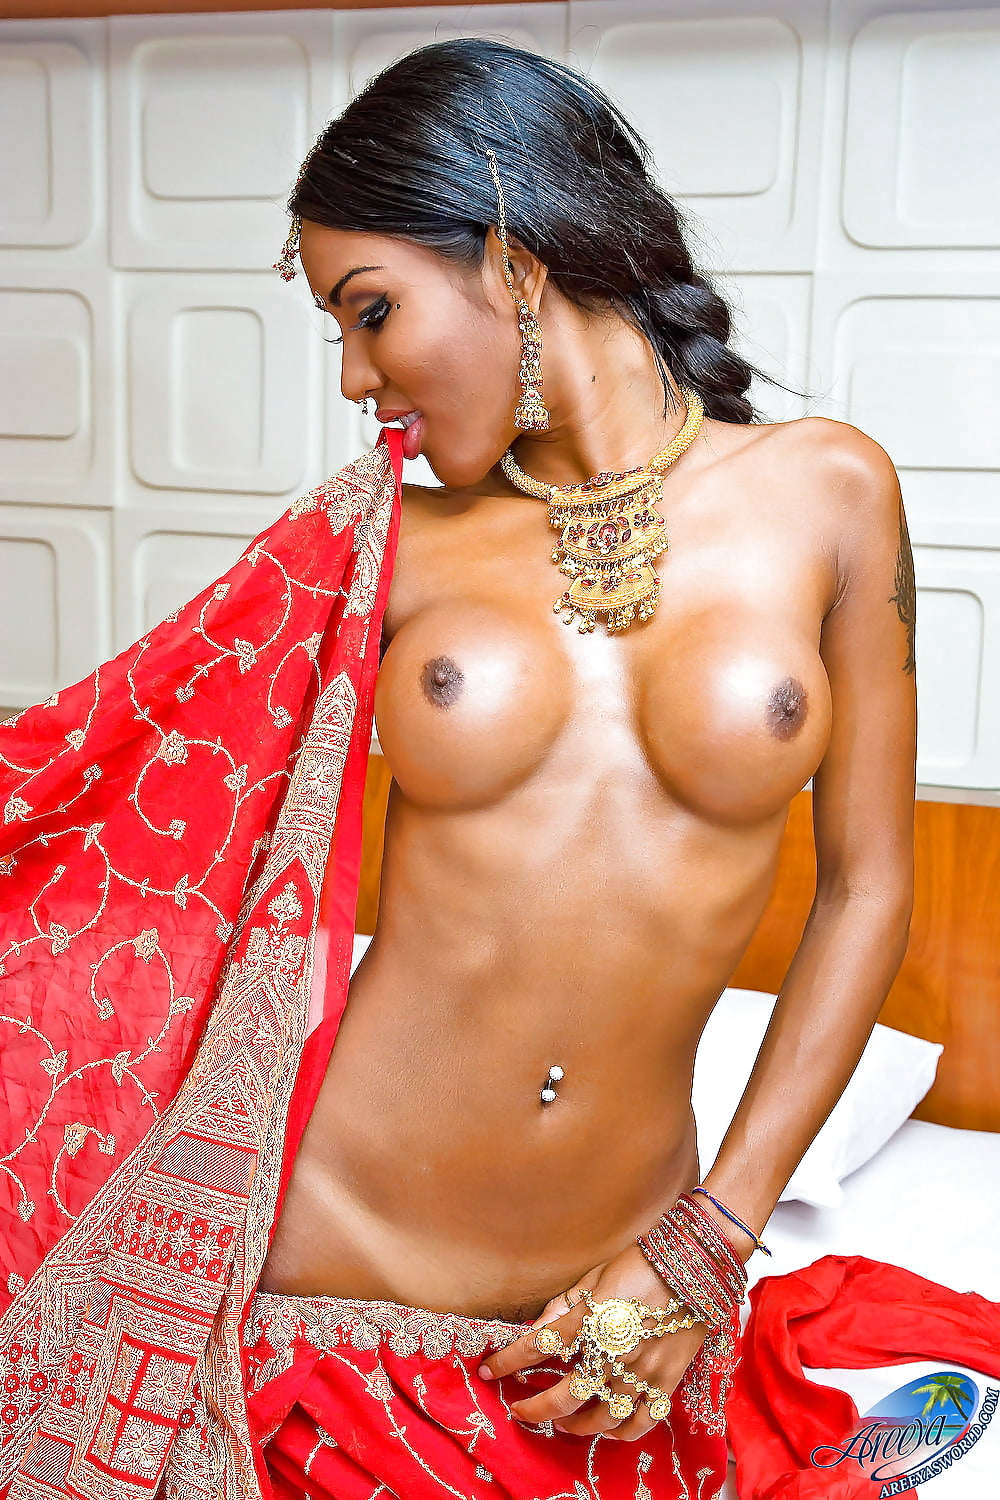 Indian transexual naked — photo 12